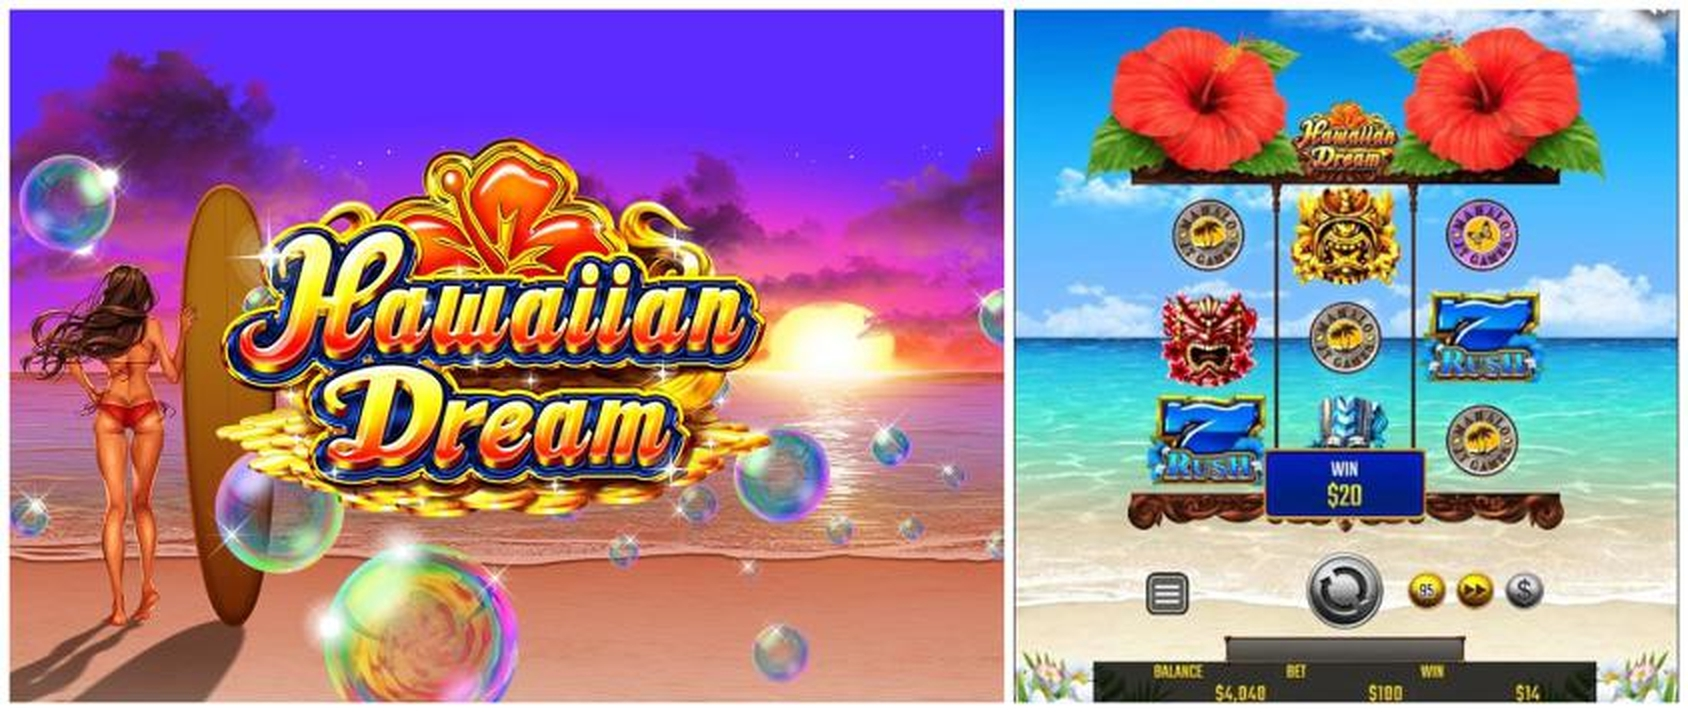 The Hawaiian Dream Online Slot Demo Game by JTG